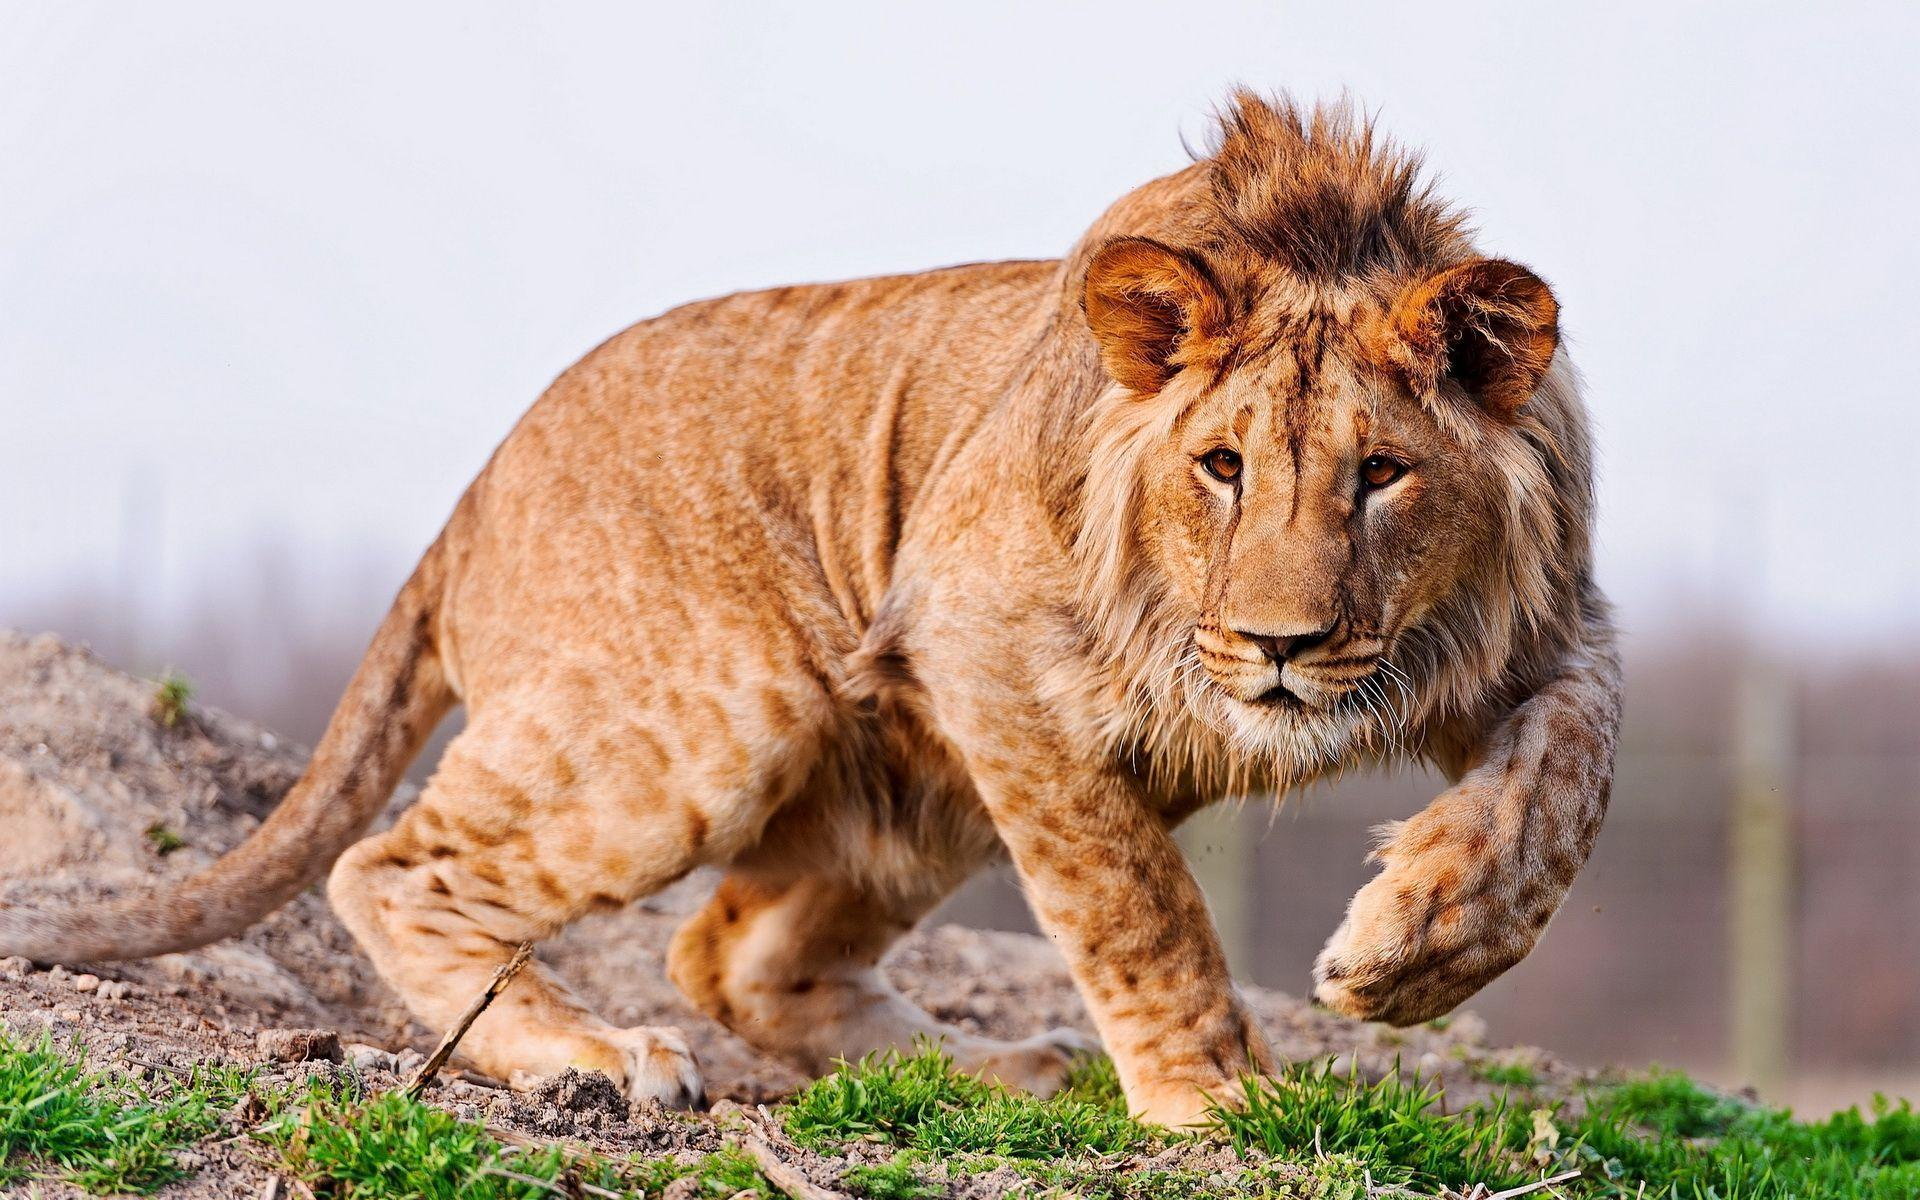 Young lion wallpapers and images - wallpapers, pictures, photos